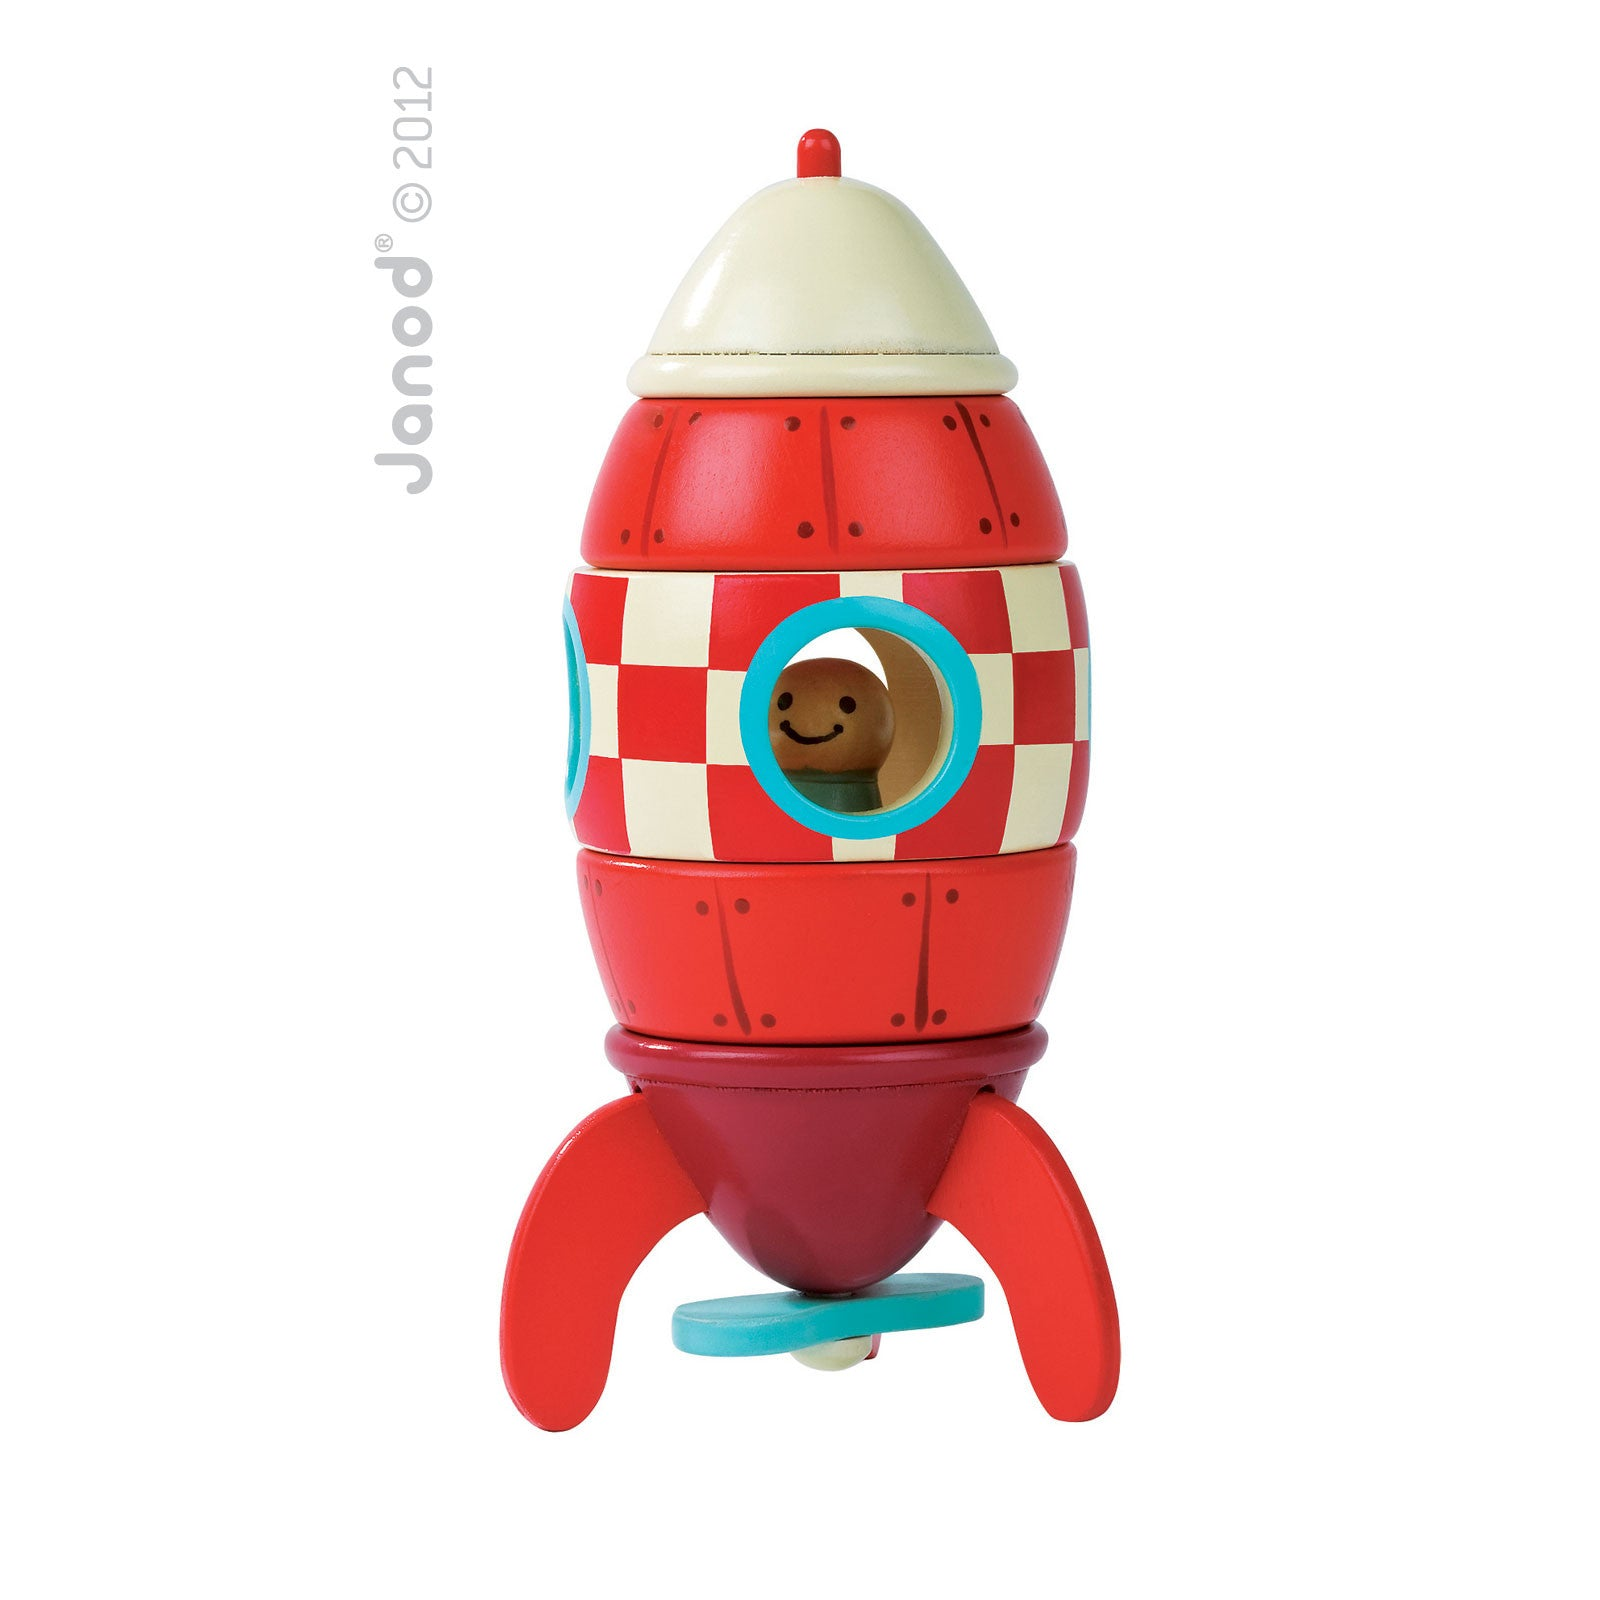 Janod Magnetic Rocket Toy Little Earth Nest